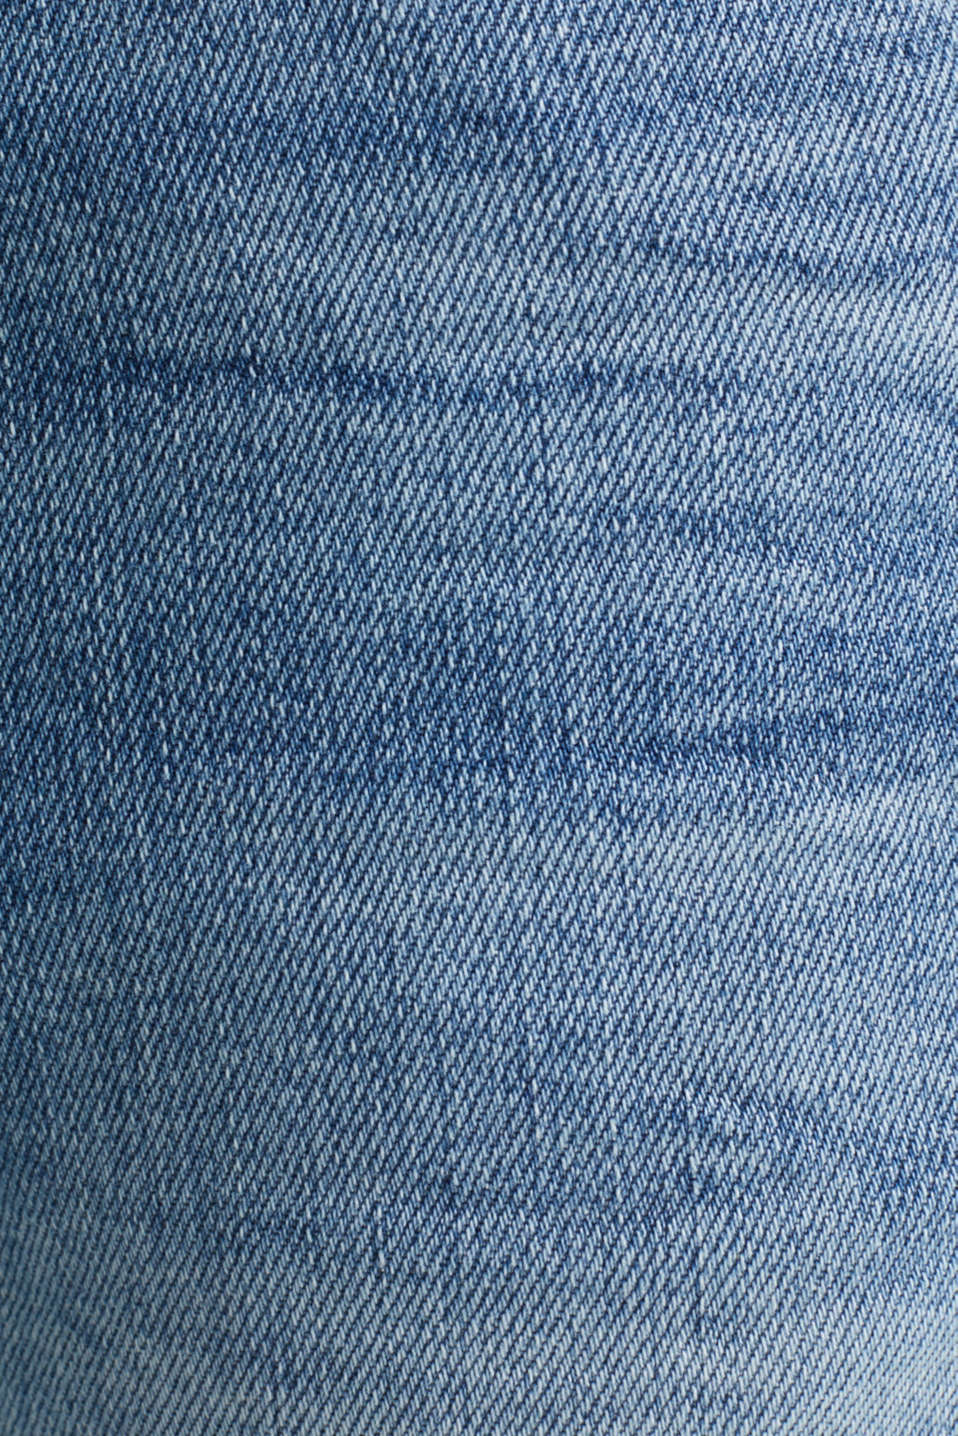 Premium jeans with whiskering, BLUE LIGHT WASH, detail image number 4